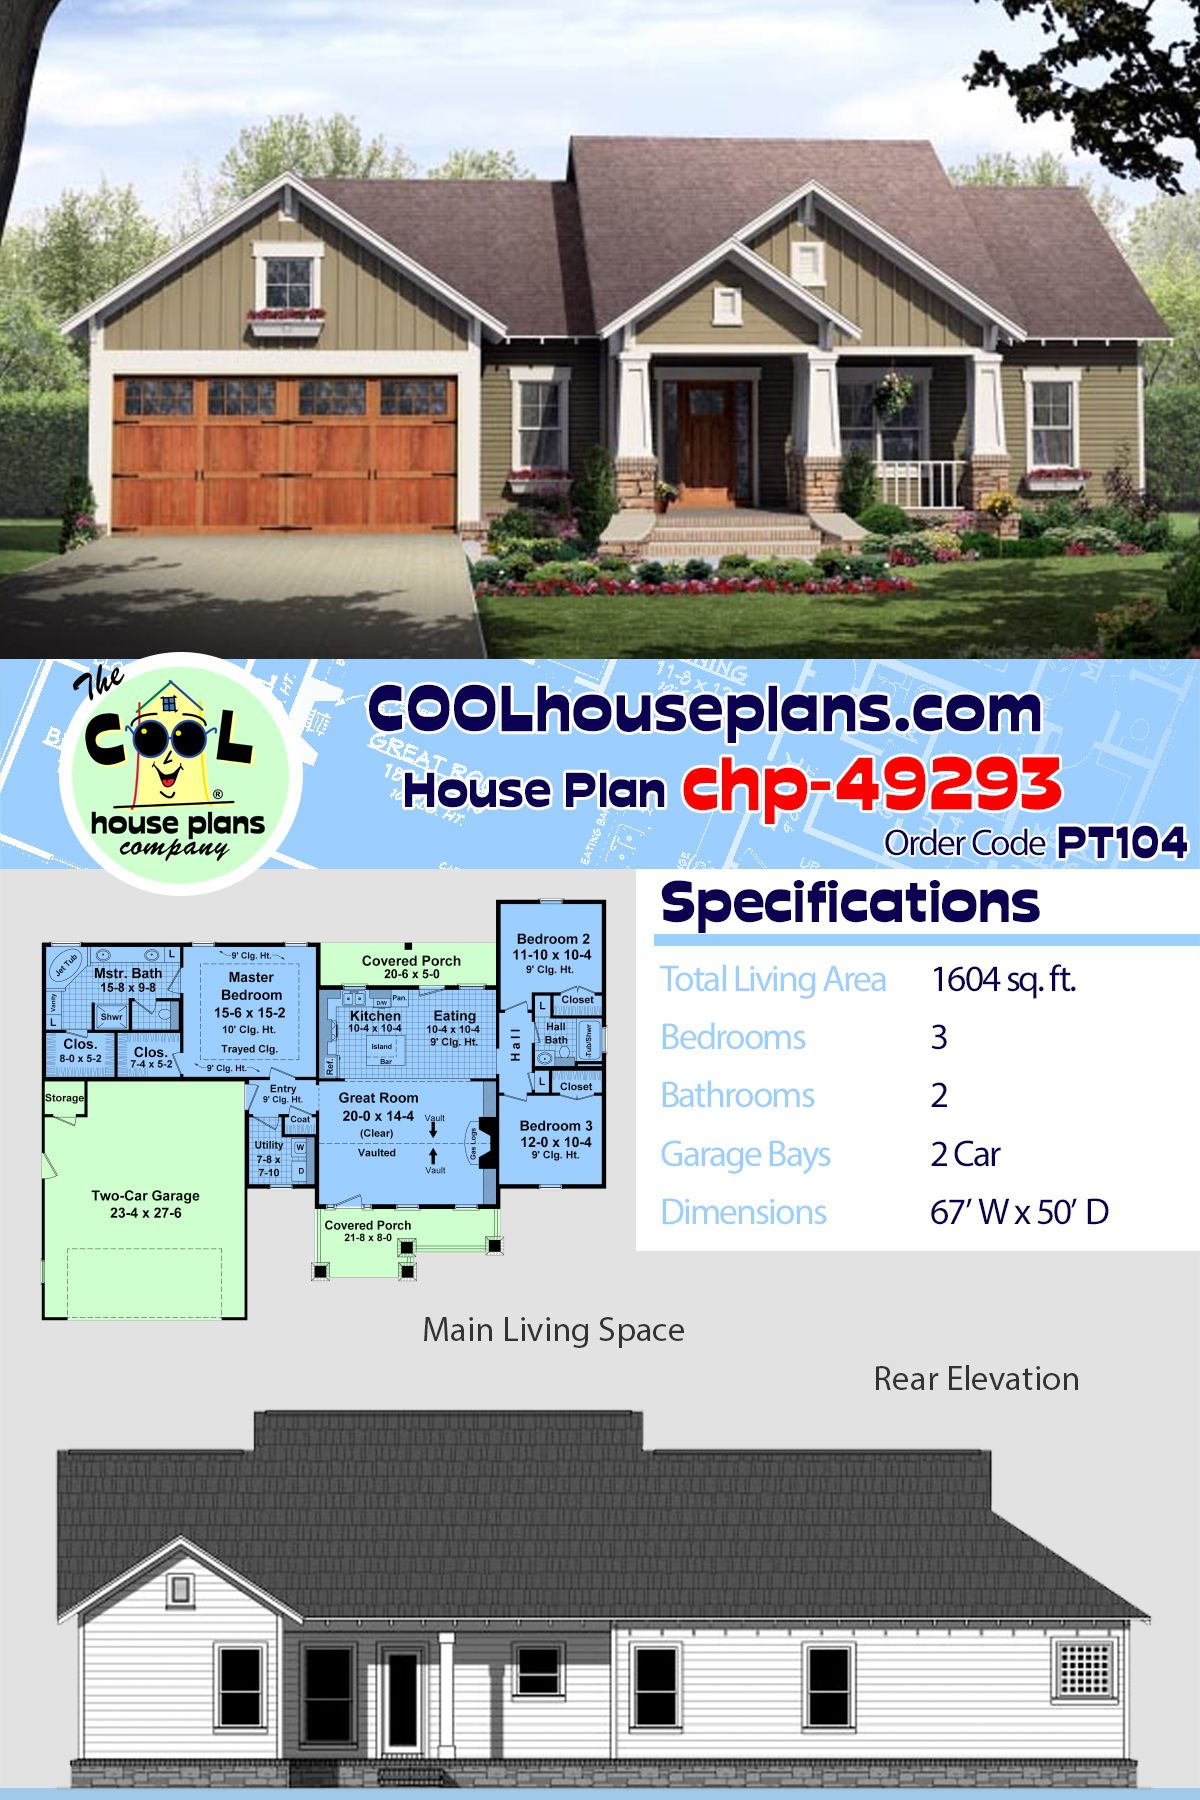 Craftsman Style House Plan 59942 With 3 Bed 2 Bath 2 Car Garage Craftsman House Plans Craftsman Style House Plans Craftsman Floor Plans